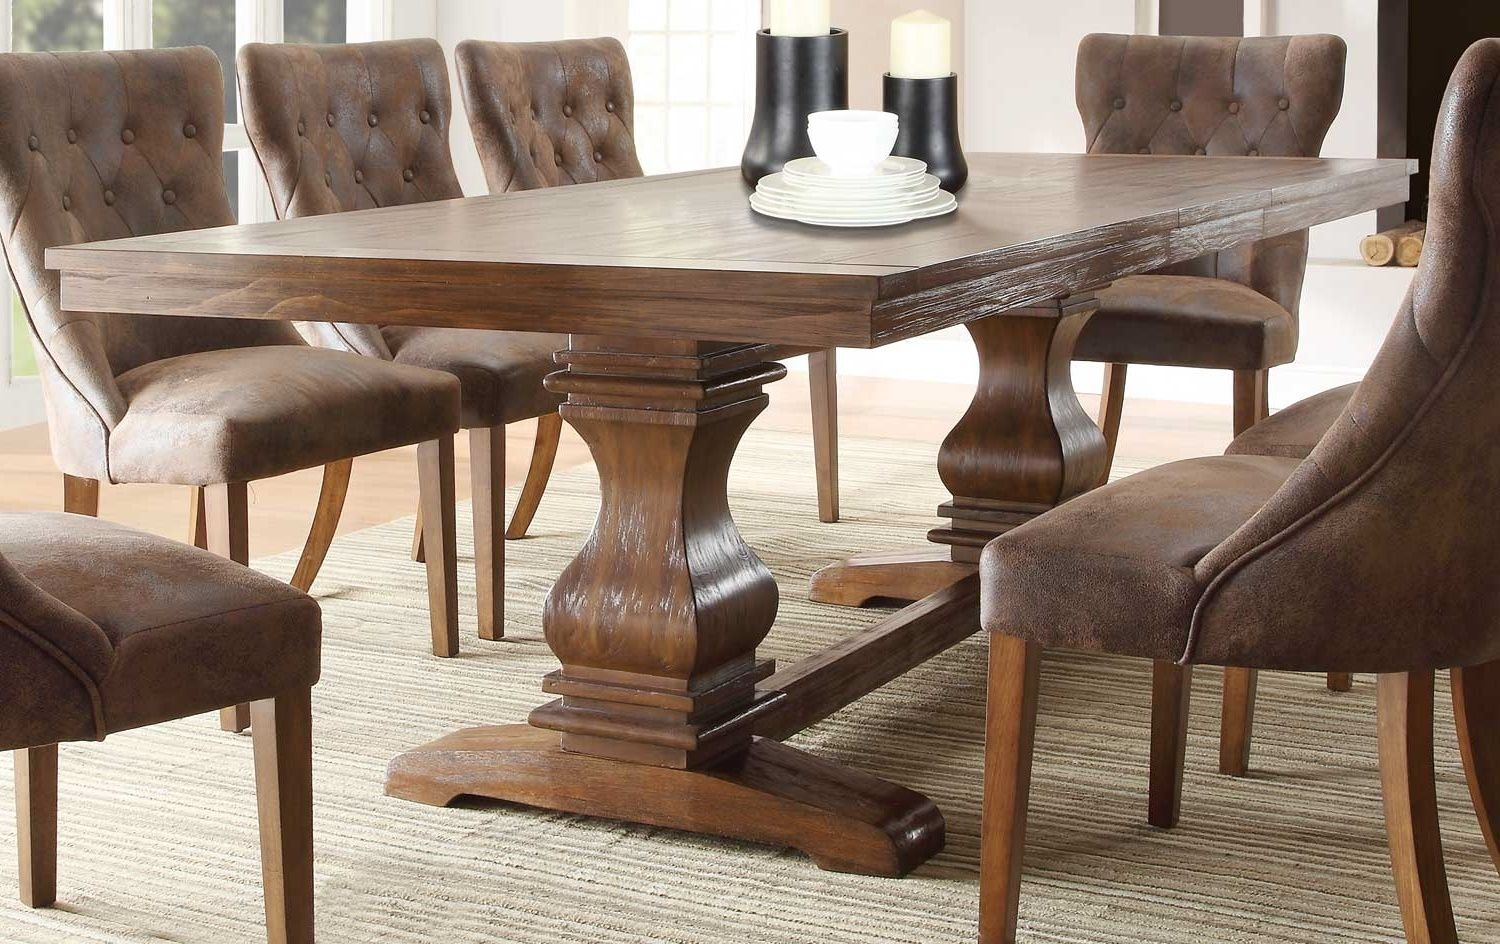 Rustic Leather Dining Room Chairs  Httpenricbataller Extraordinary Leather Dining Room Sets Decorating Design